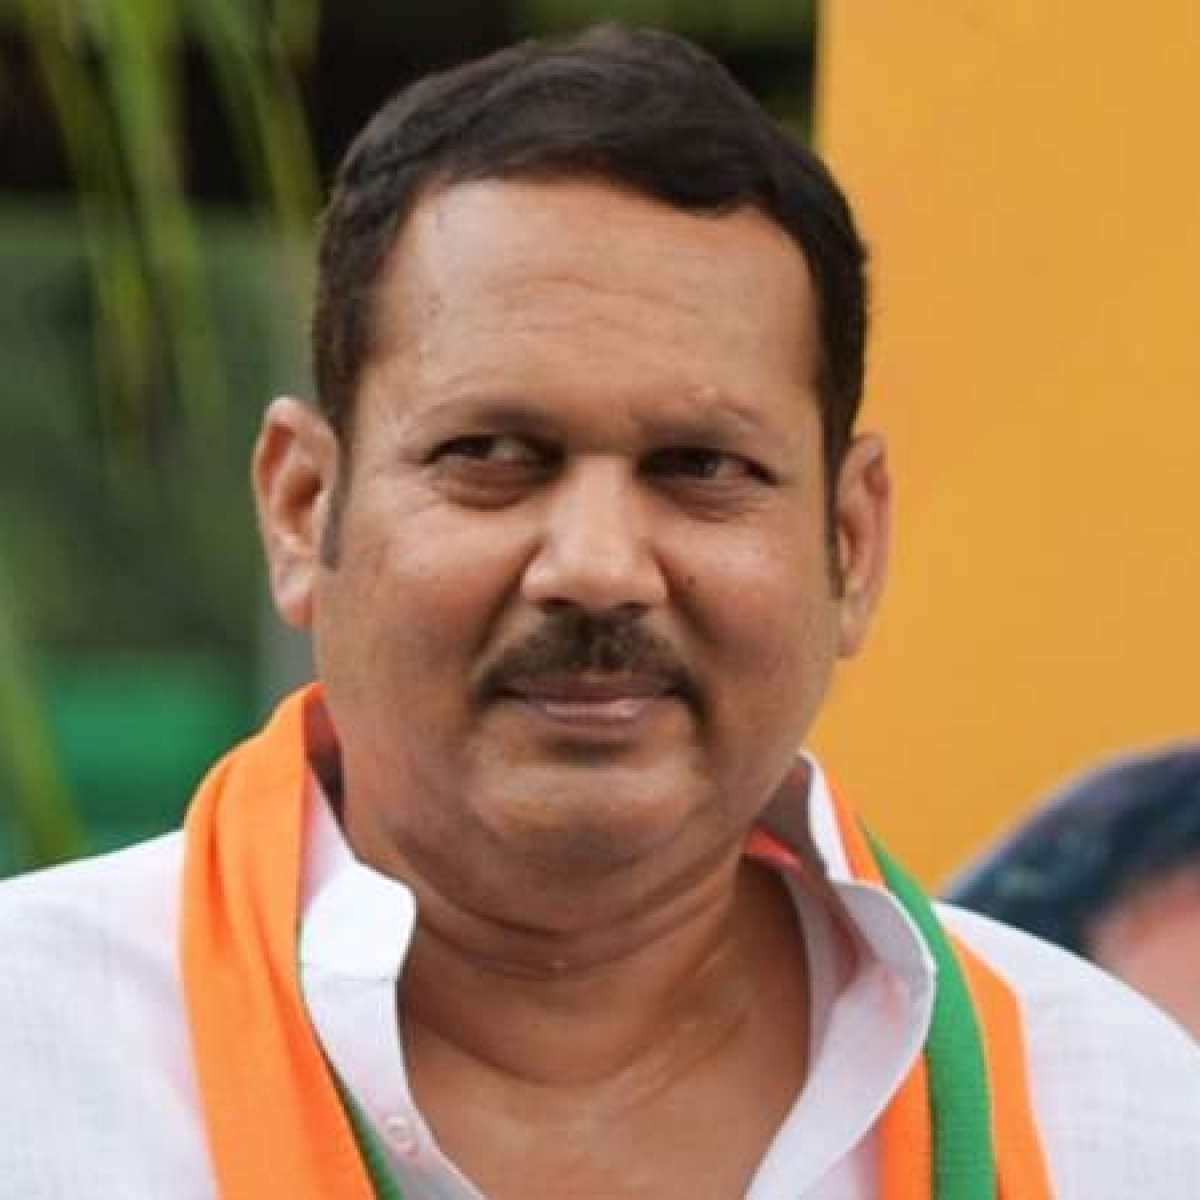 Mumbai: Don't let legislators venture out of their homes, BJP MP Udayanraje Bhosale asks supporters of Maratha reservation